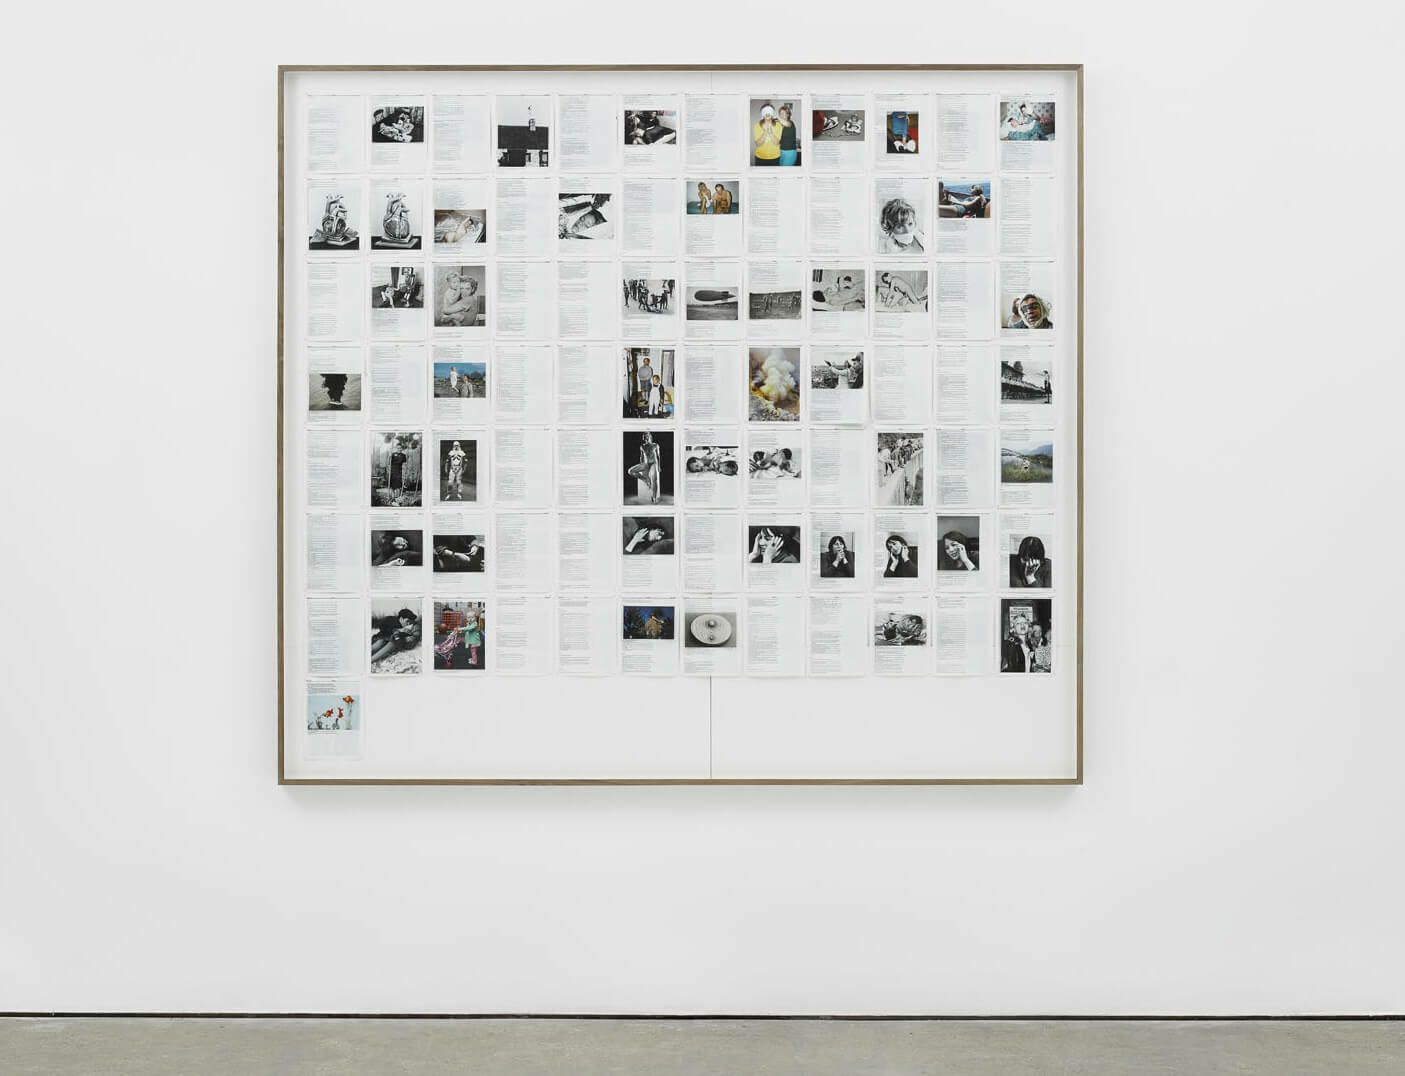 Broomberg & Chanarin's 'Divine Violence' opens at Centre Pompidou